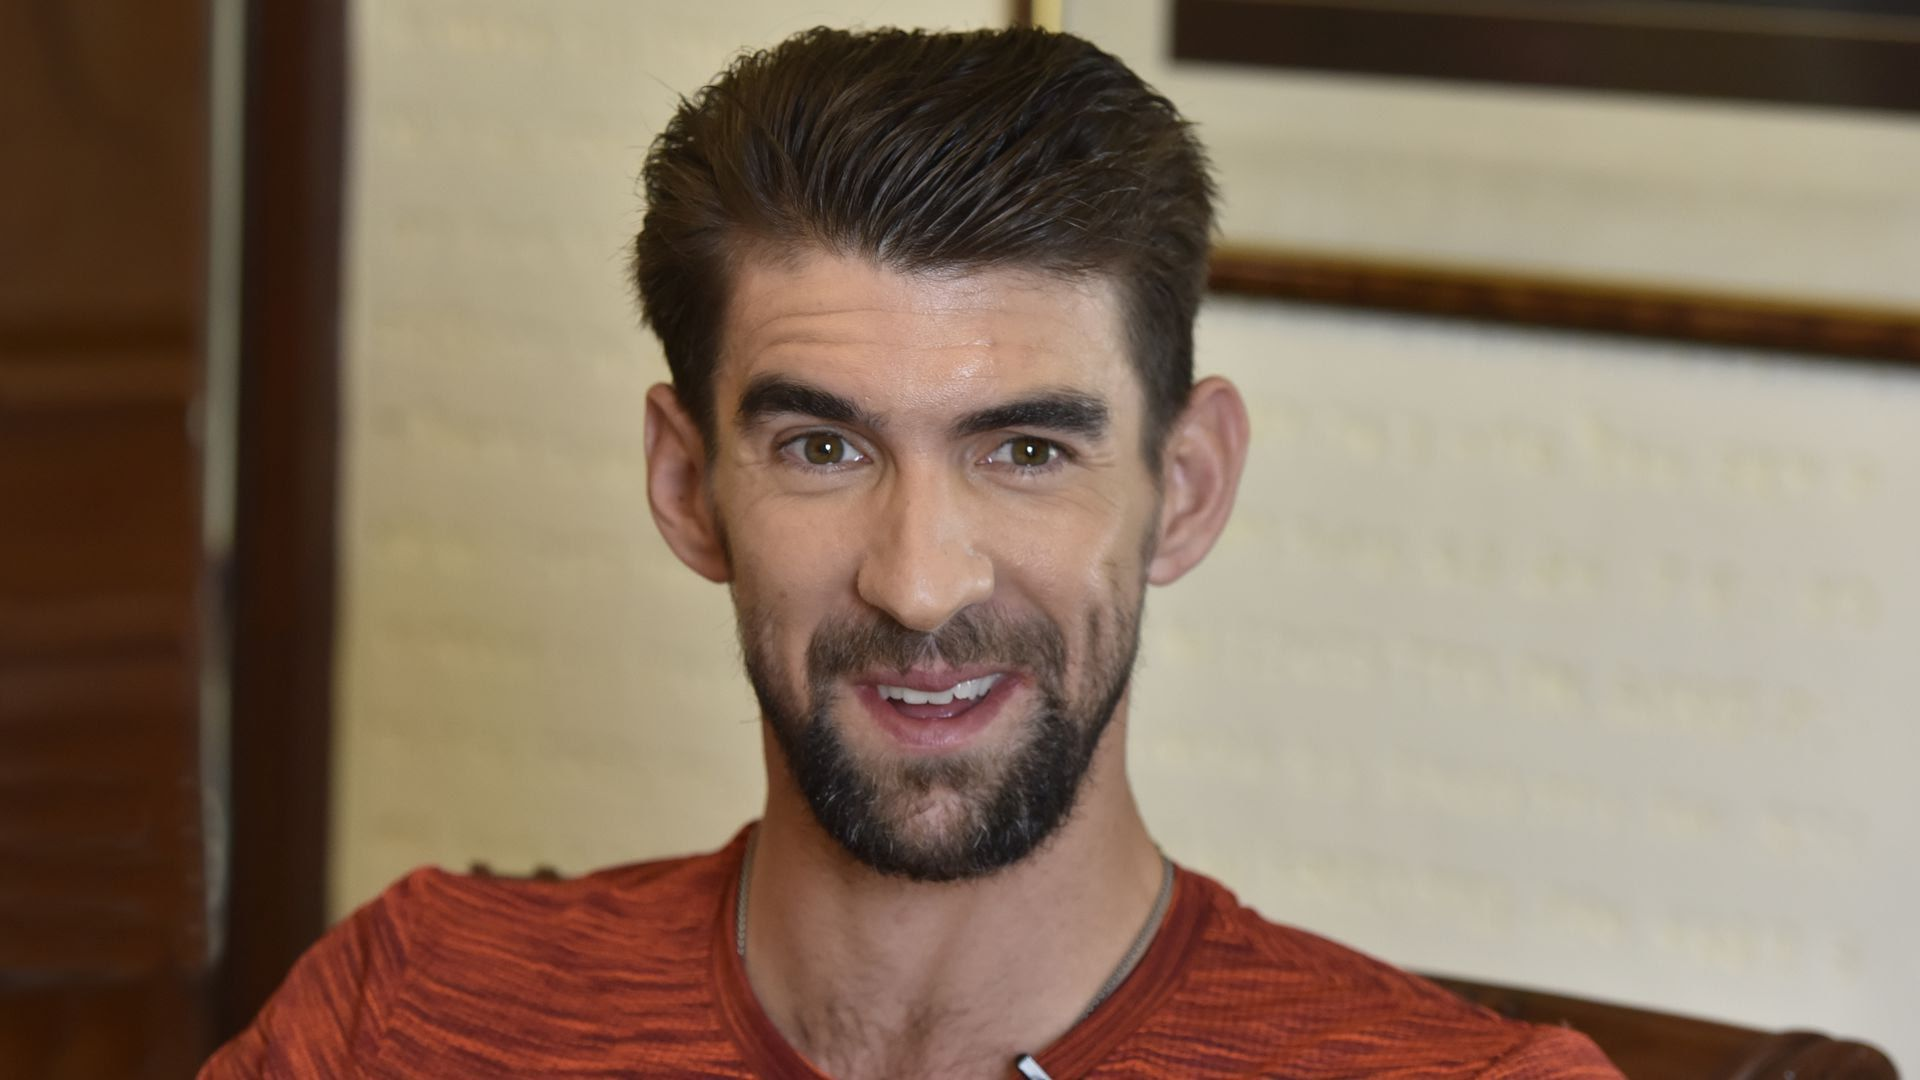 Retired Olympic swimmer Michael Phelps